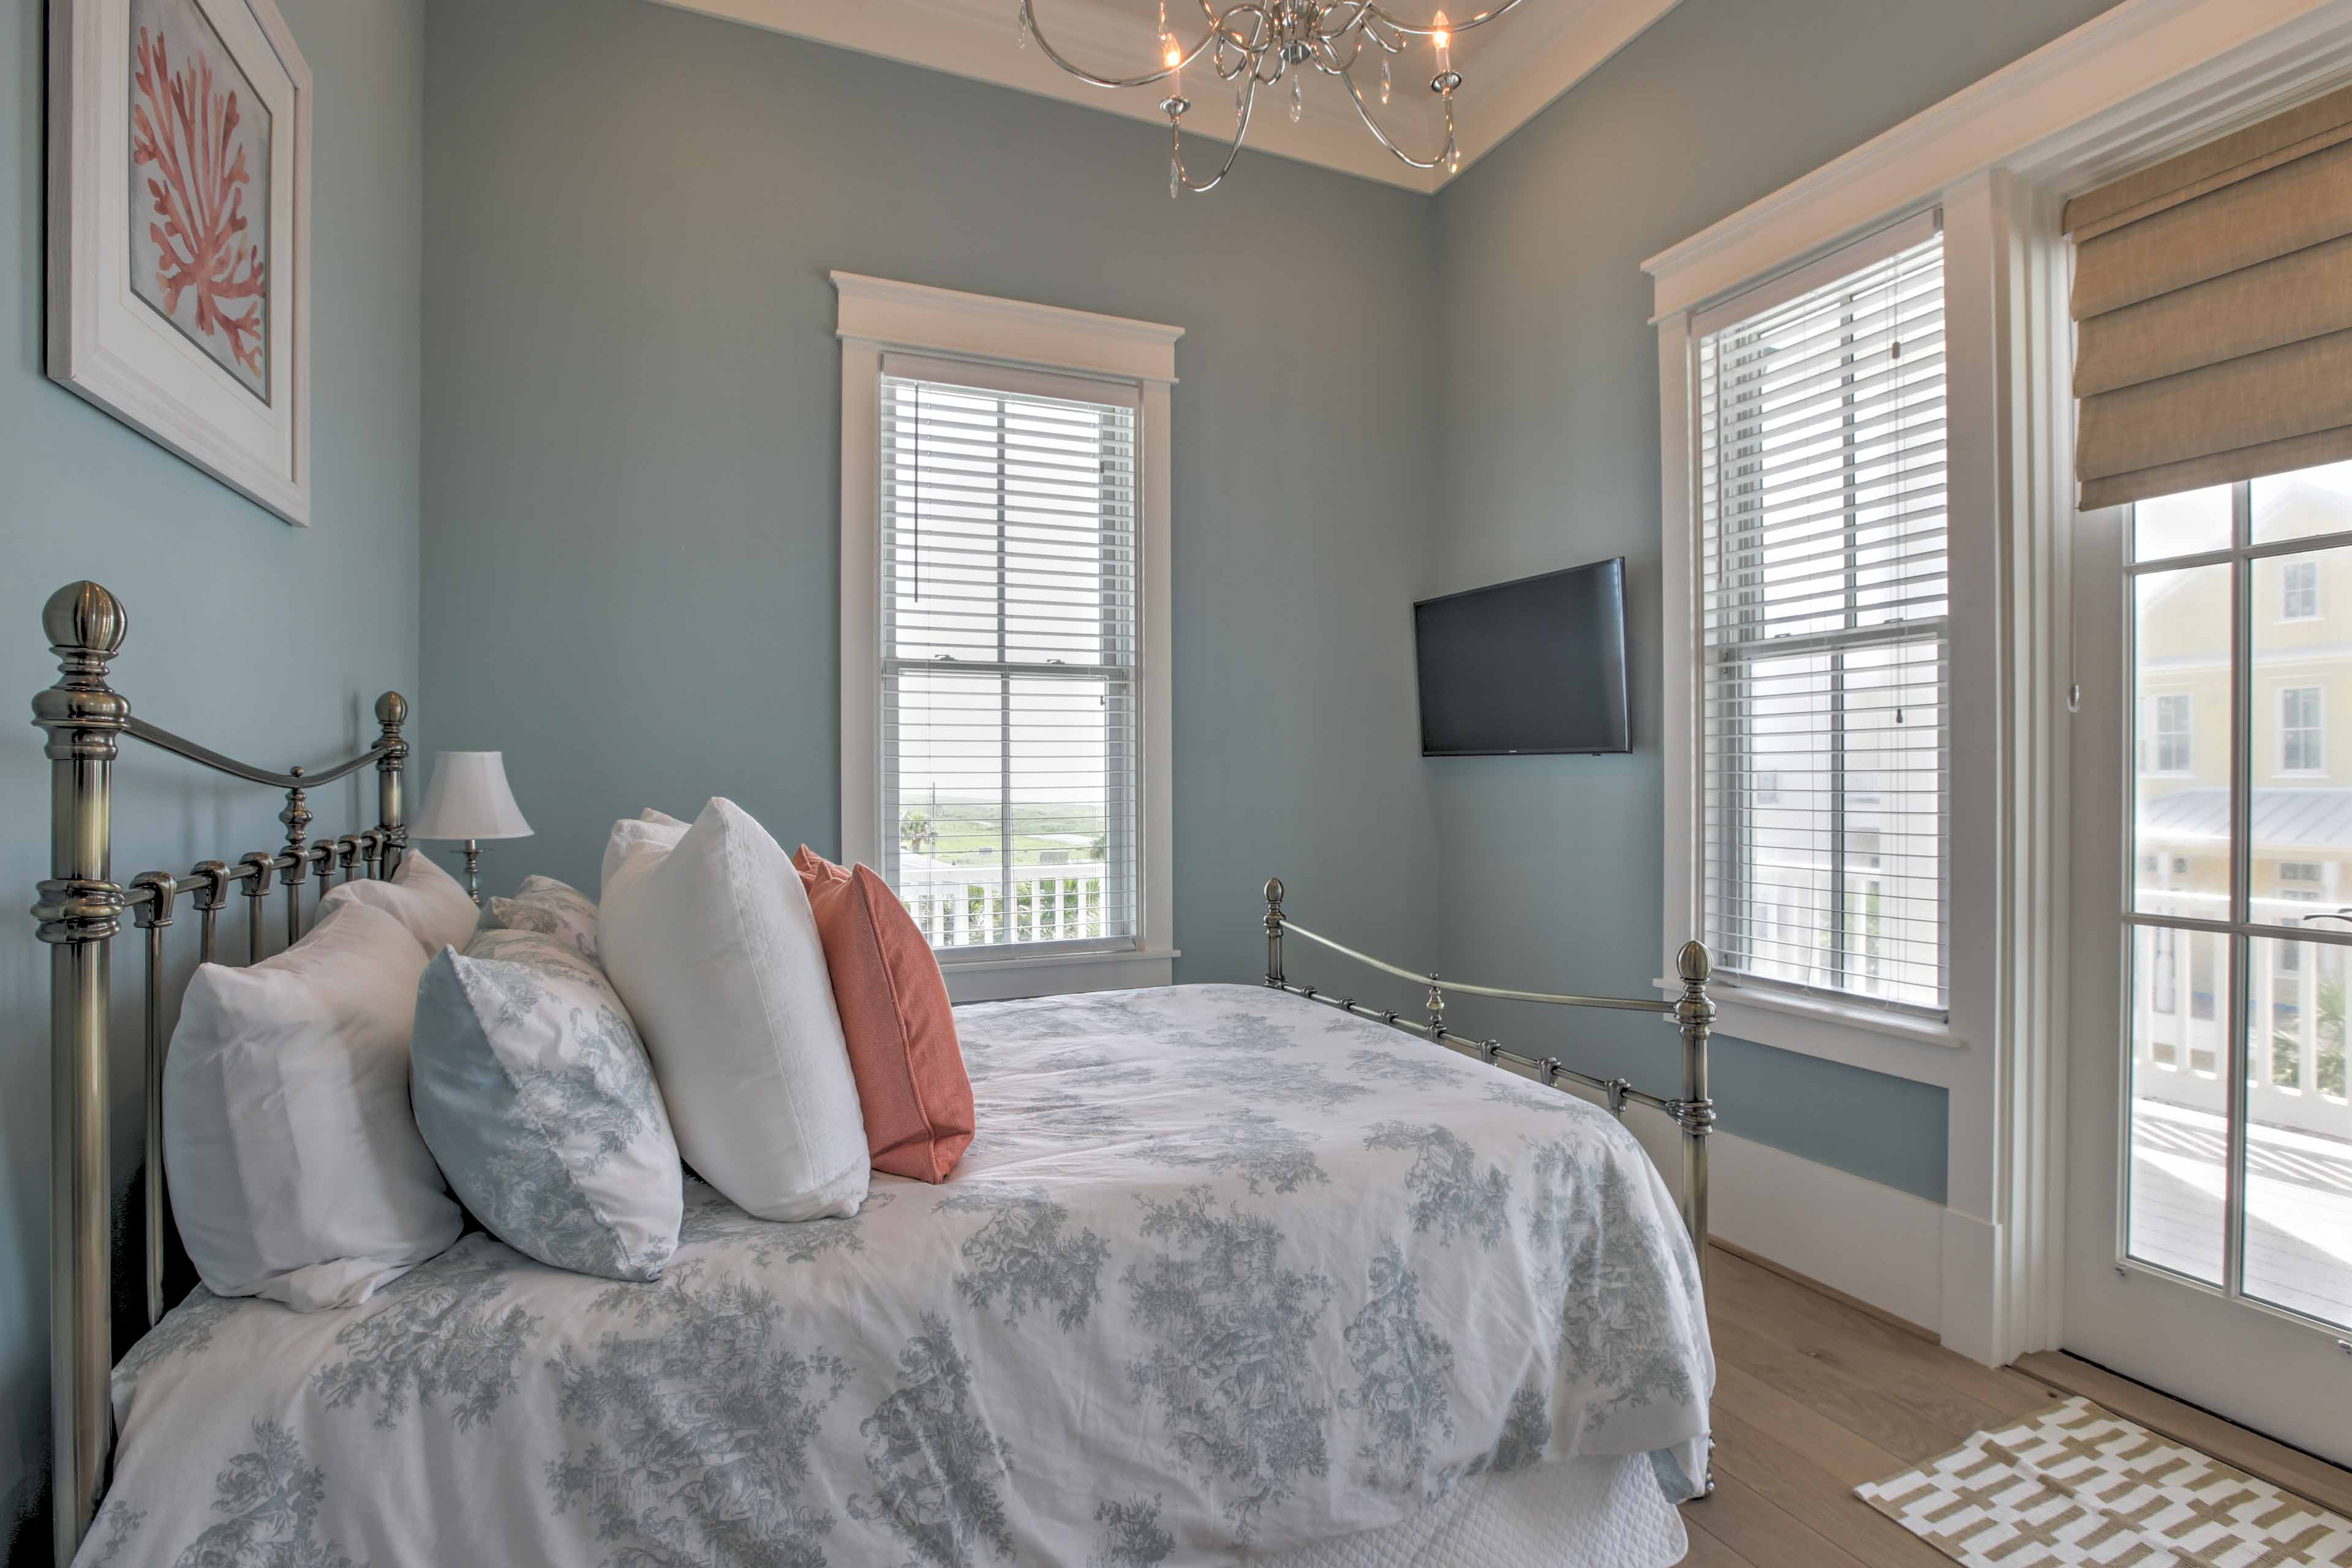 The second bedroom has a full-sized bed and private access to the balcony.